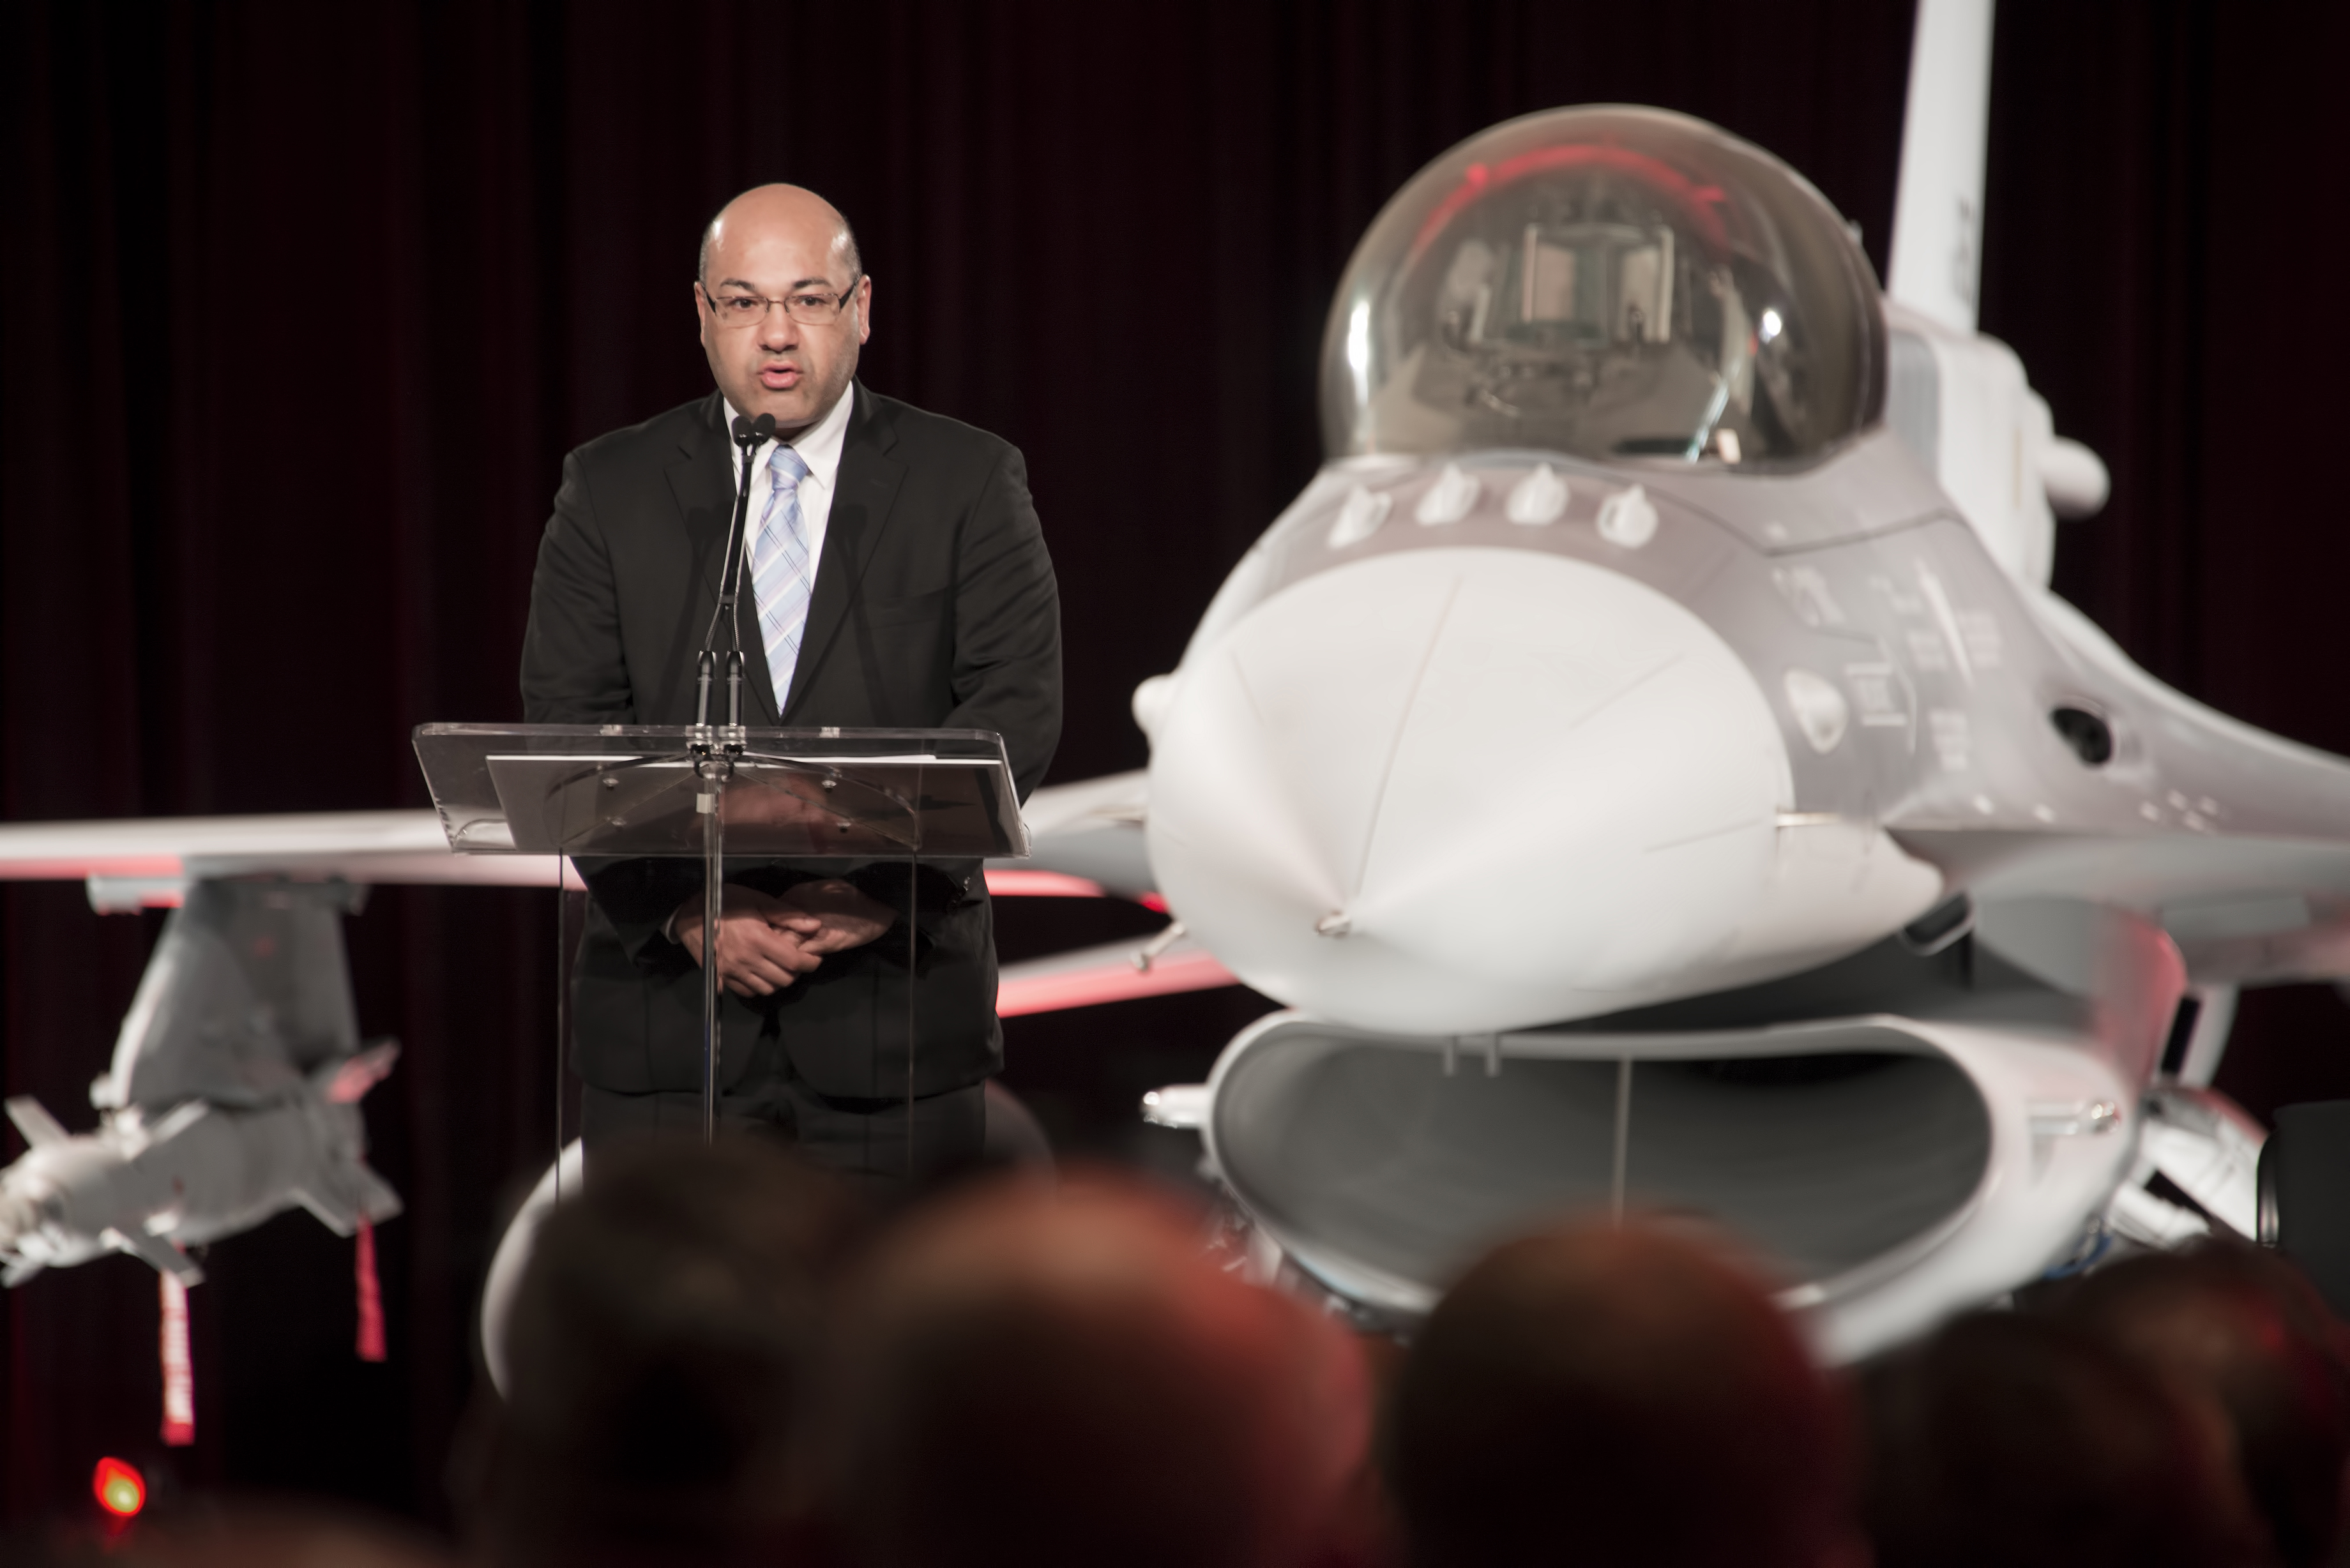 Lukman Faily, Iraq's ambassador to the U.S., accepts his nation's first F-16 fighter at the Lockheed factory in Fort Worth June 5.